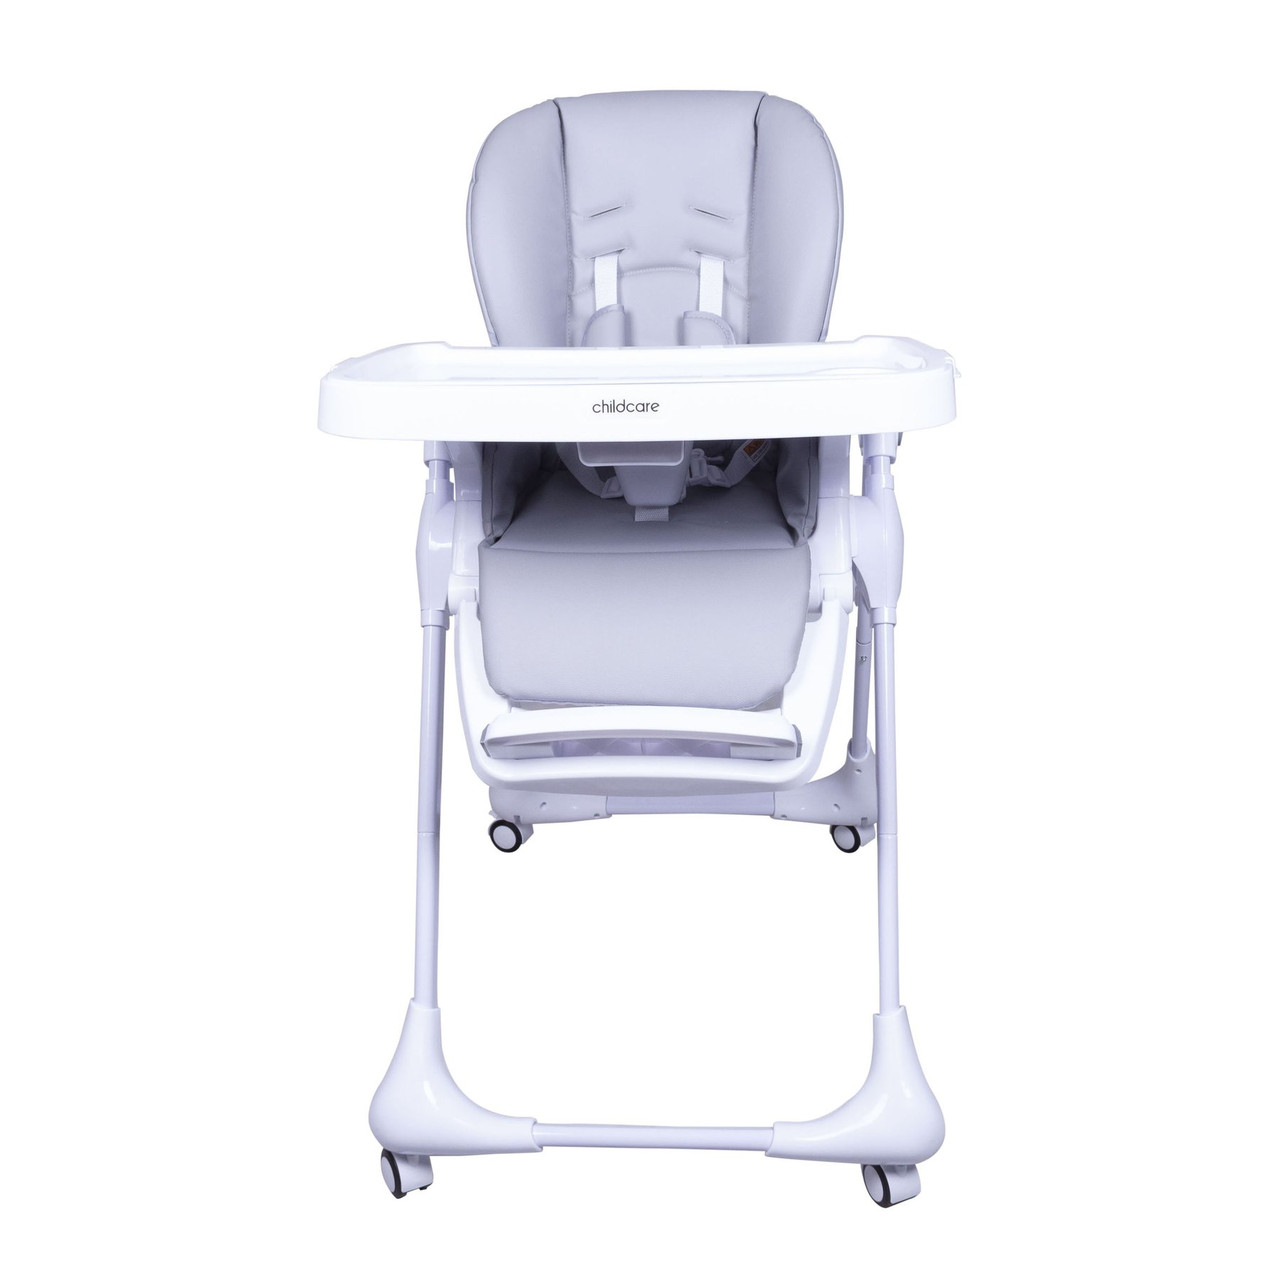 Childcare Pip High Chair Cool Grey at Baby Barn Discounts Childcare Pip Highchair has been built to make everyday tasks as simple as possible.